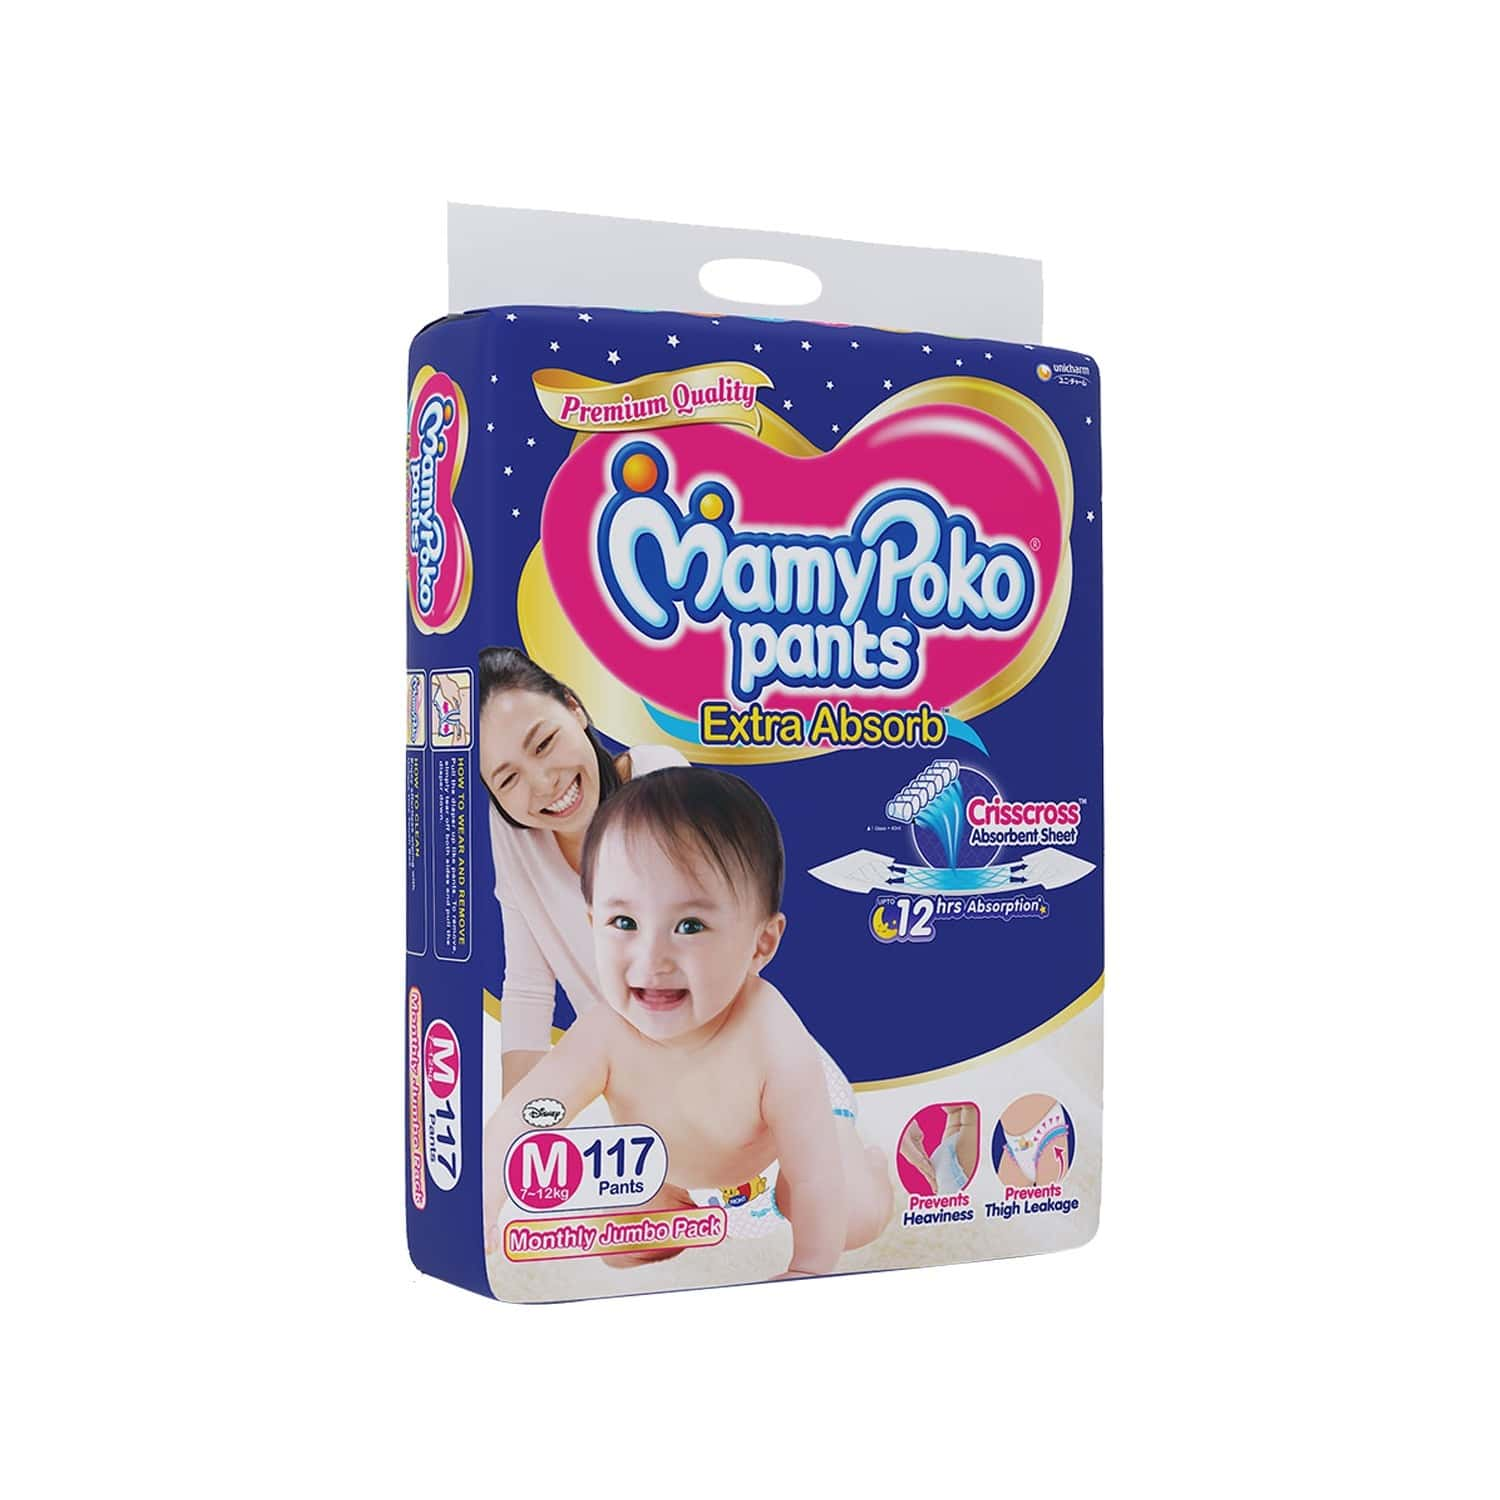 Mamypoko Pants Extra Absorb Diaper -monthly Jumbo Pack- Medium Size, Pack Of 117 Diapers (m-117)